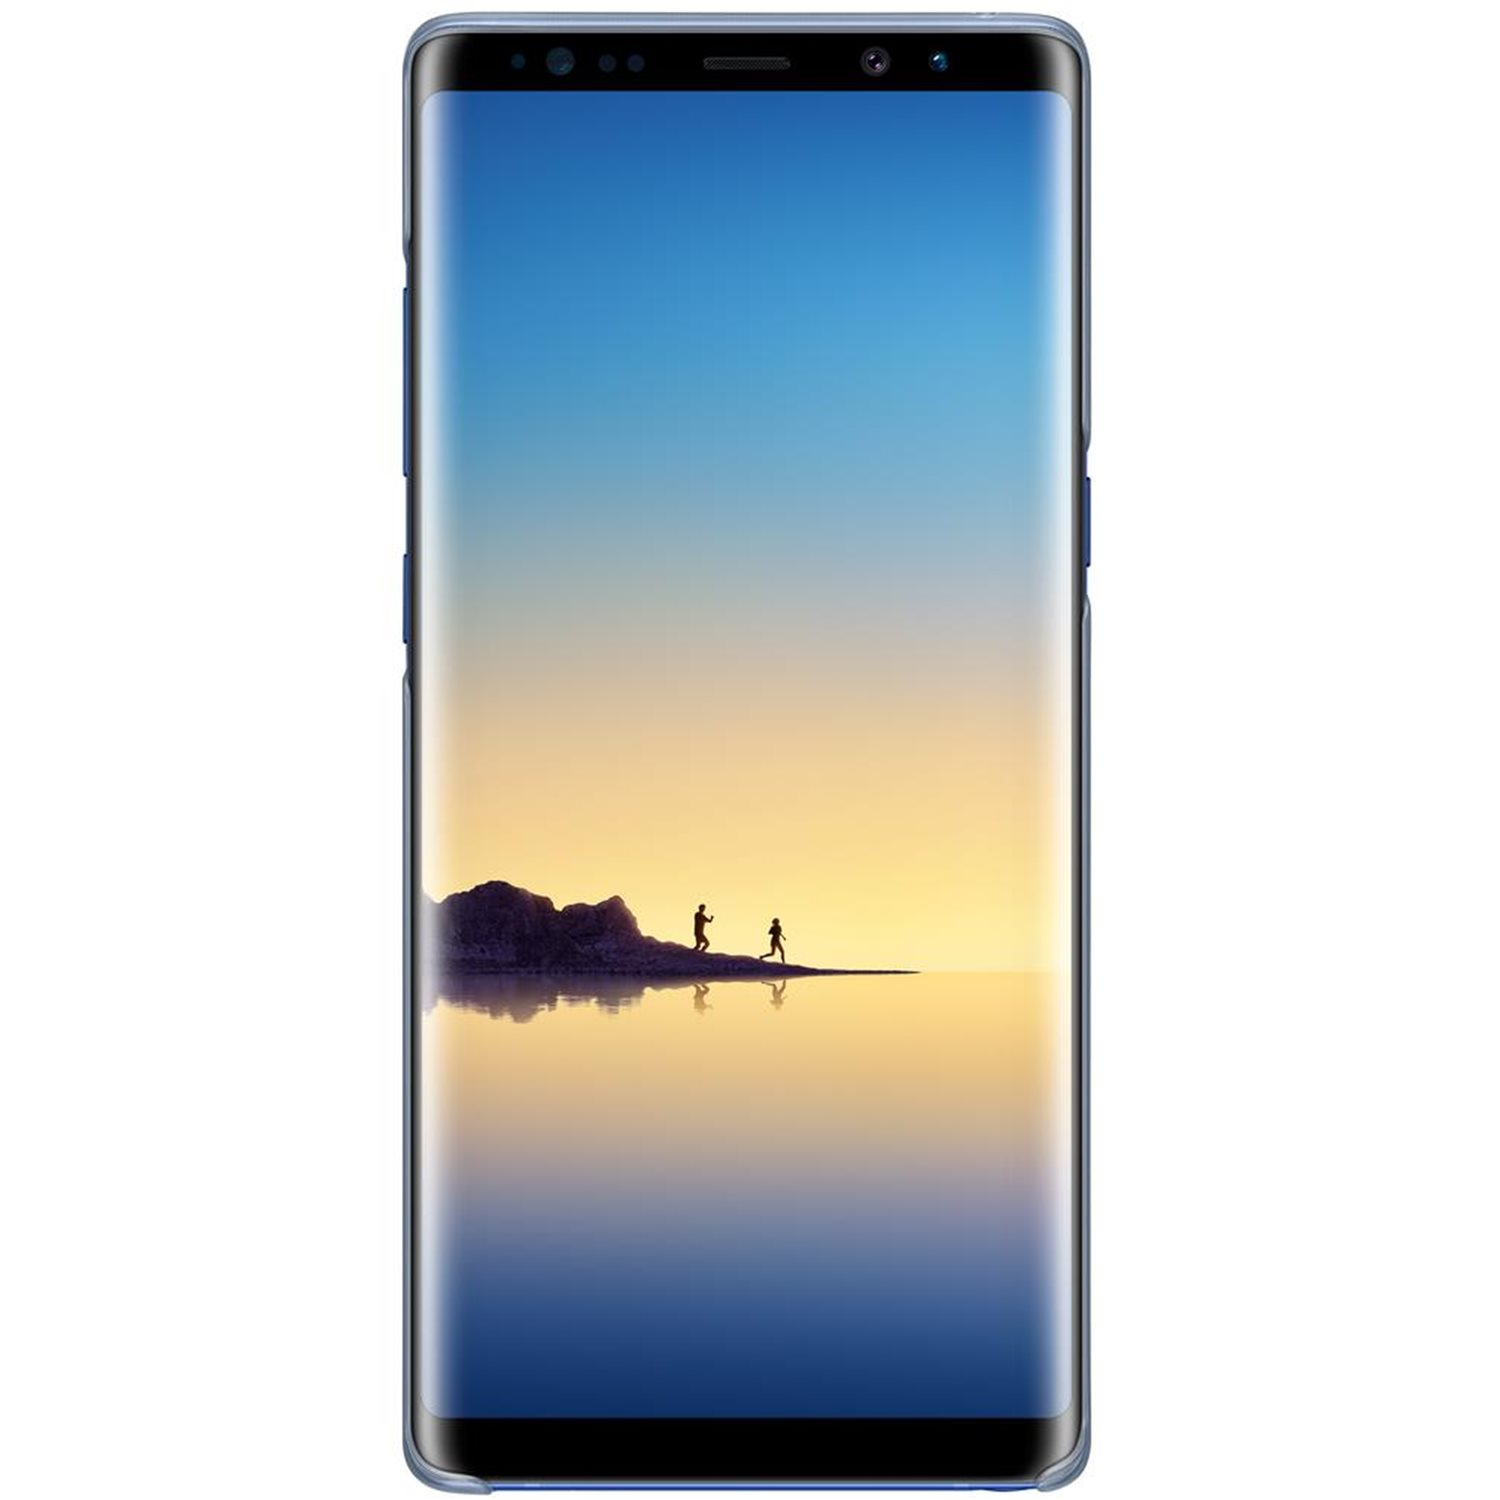 Official Samsung Galaxy Note 8 Clear Cover Case - Deep Blue